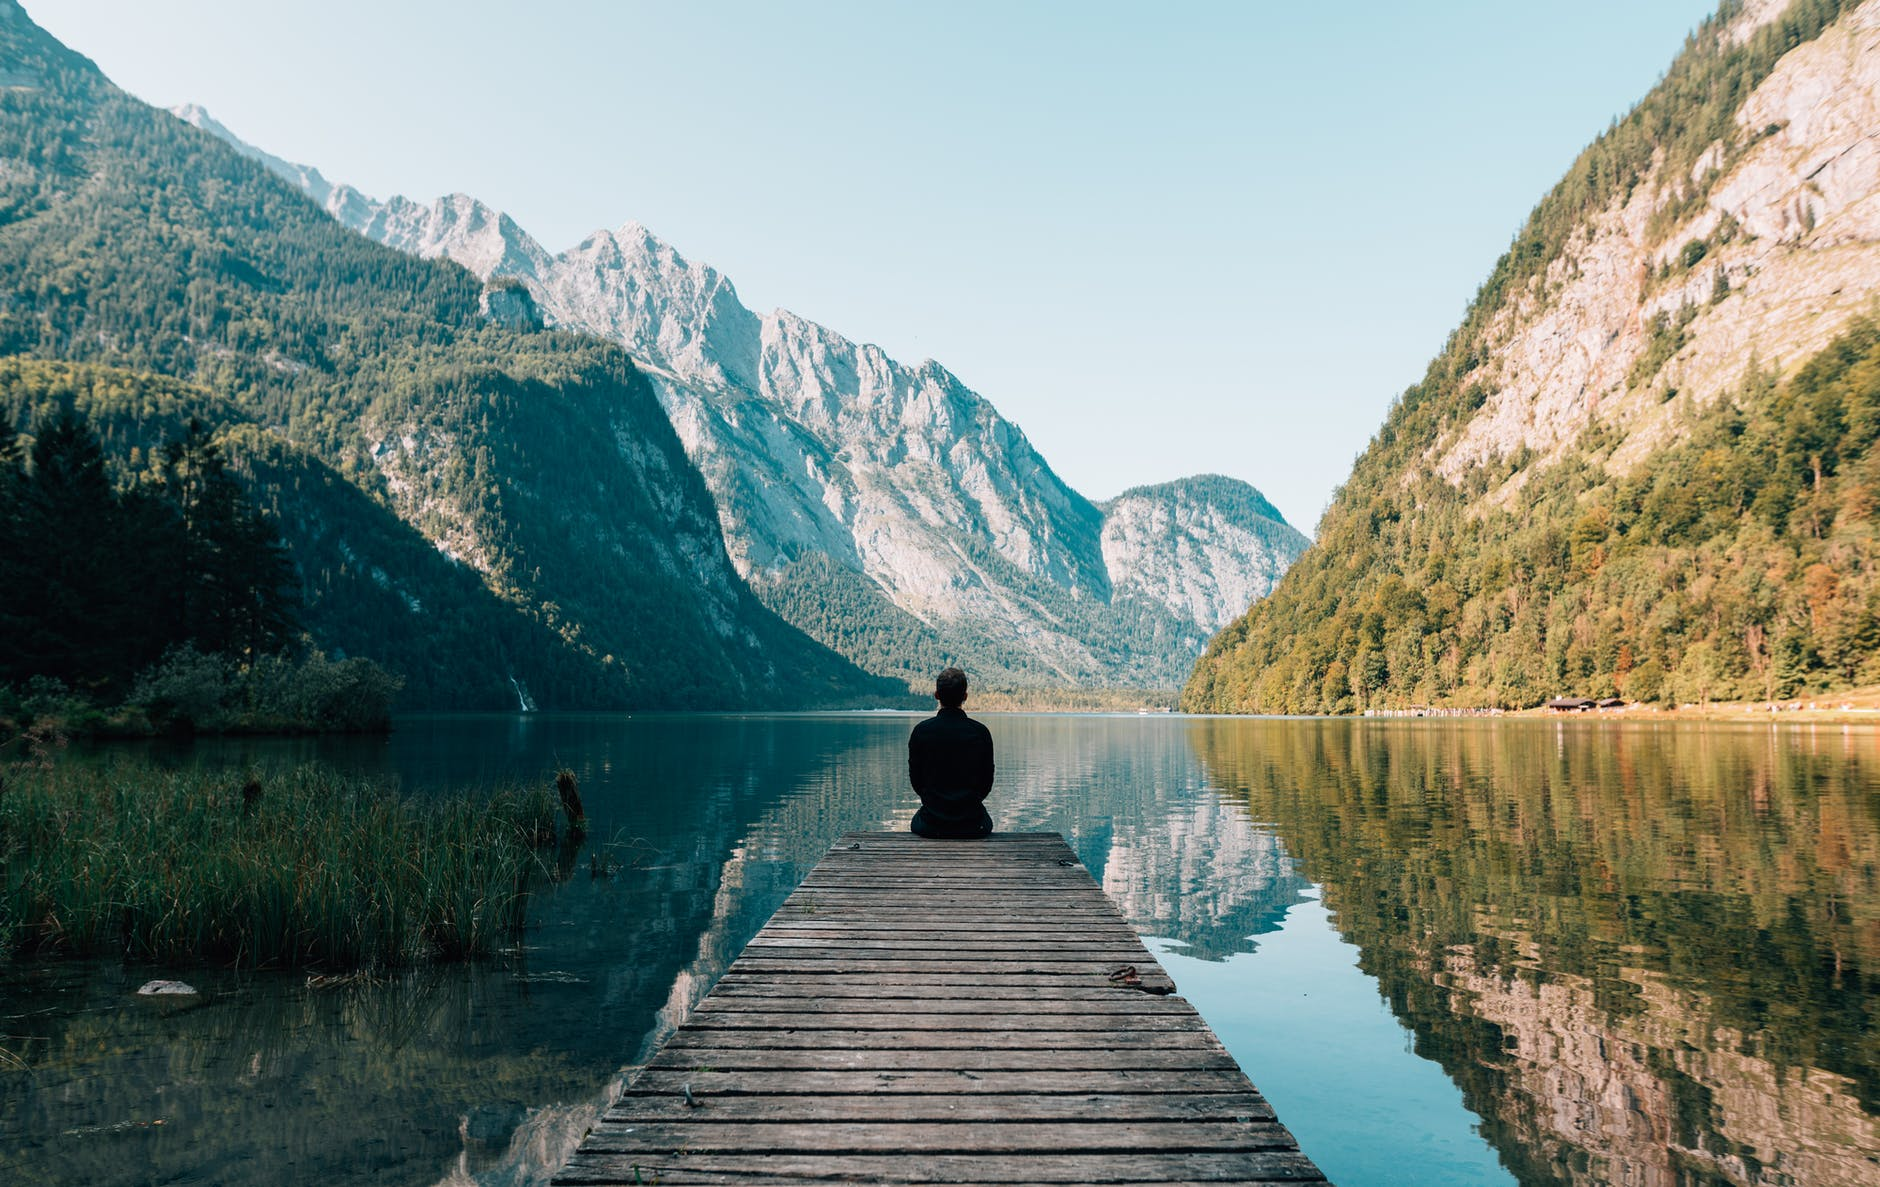 a person sitting on wooden planks across the lake scenery